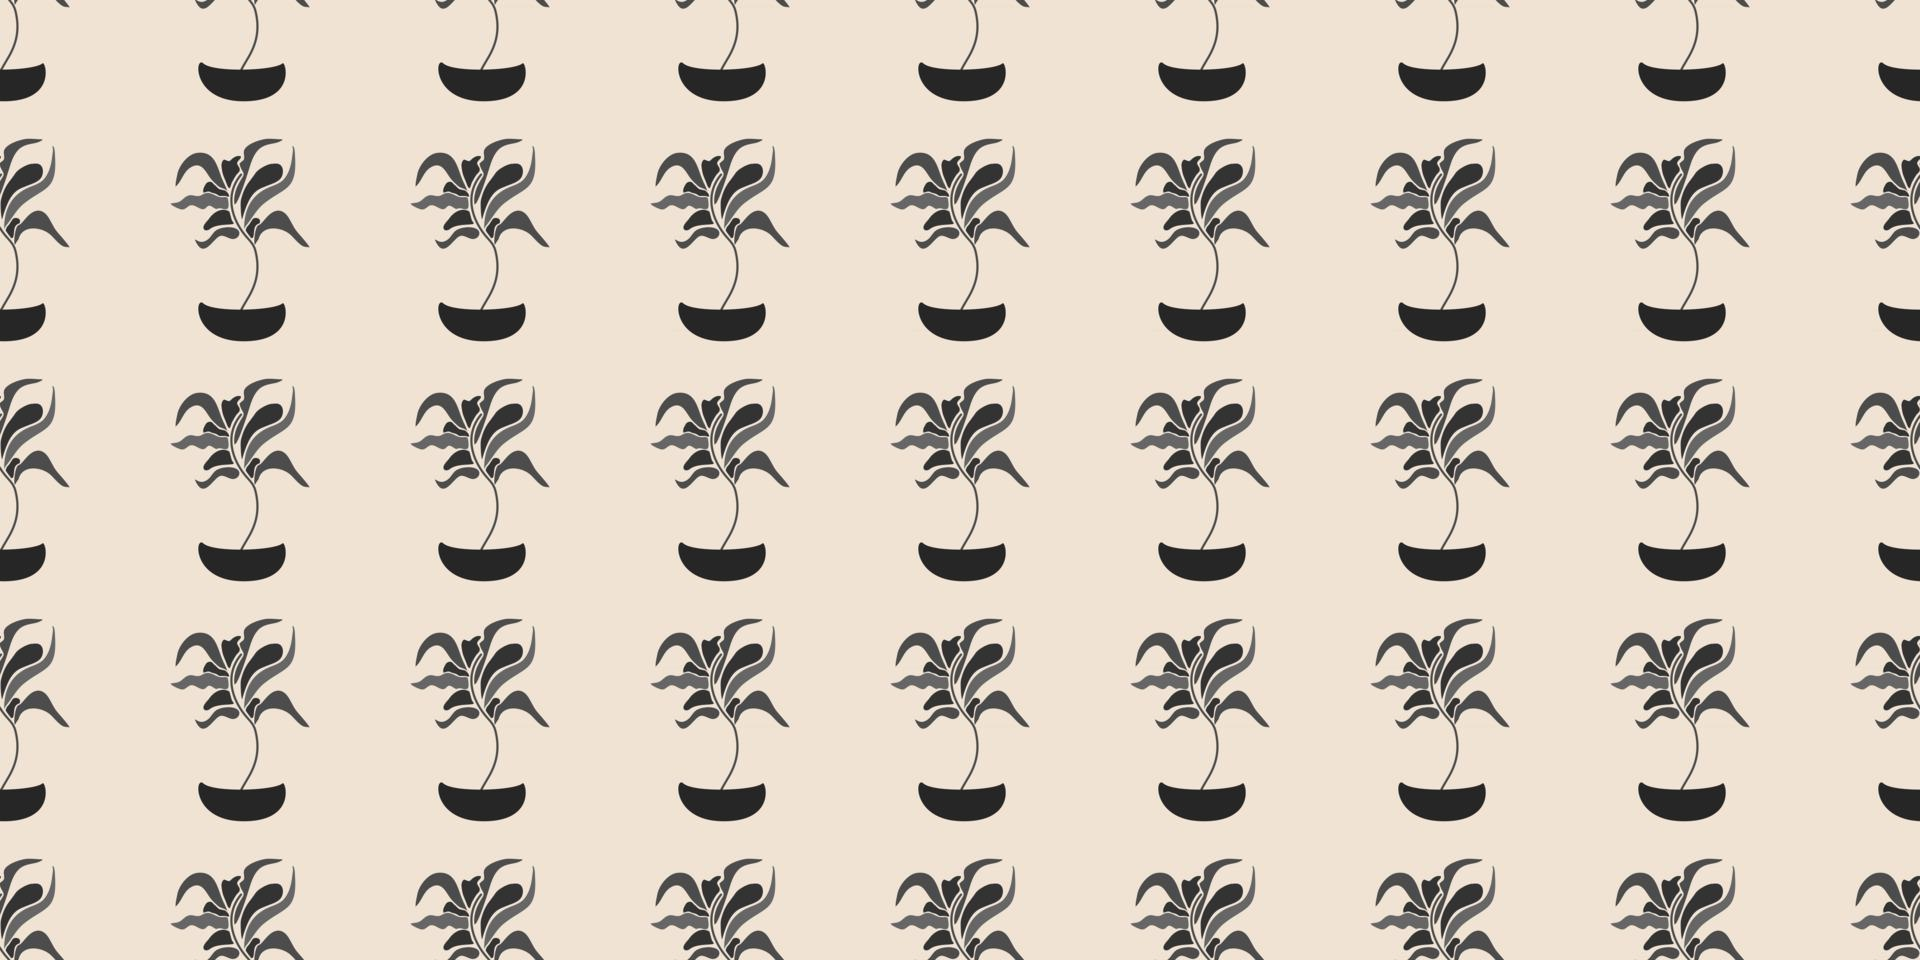 Cute floral, plant vector seamless pattern. Elegant template for fashion prints, fabric, textile, wallpaper, wall art, invitation, packaging. Ready to use